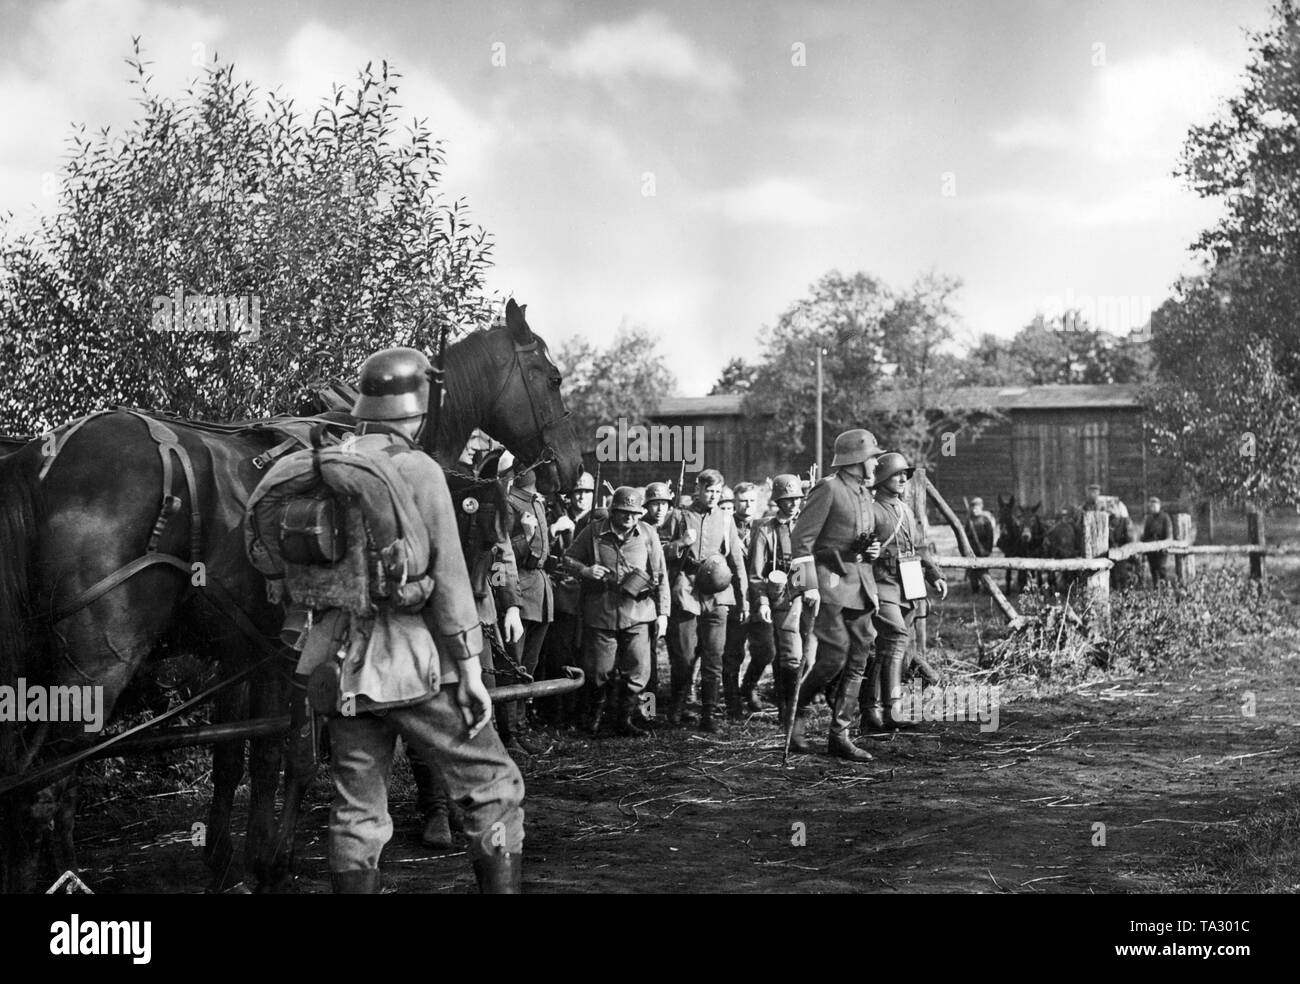 The UFA film 'Men Without a Fatherland' from 1937 is about the Freikorps 'Iron Division', a volunteer unit consisting of Germans and Baltic Germans fighting for the newly founded Baltic states against the Soviet Red Army. - Stock Image